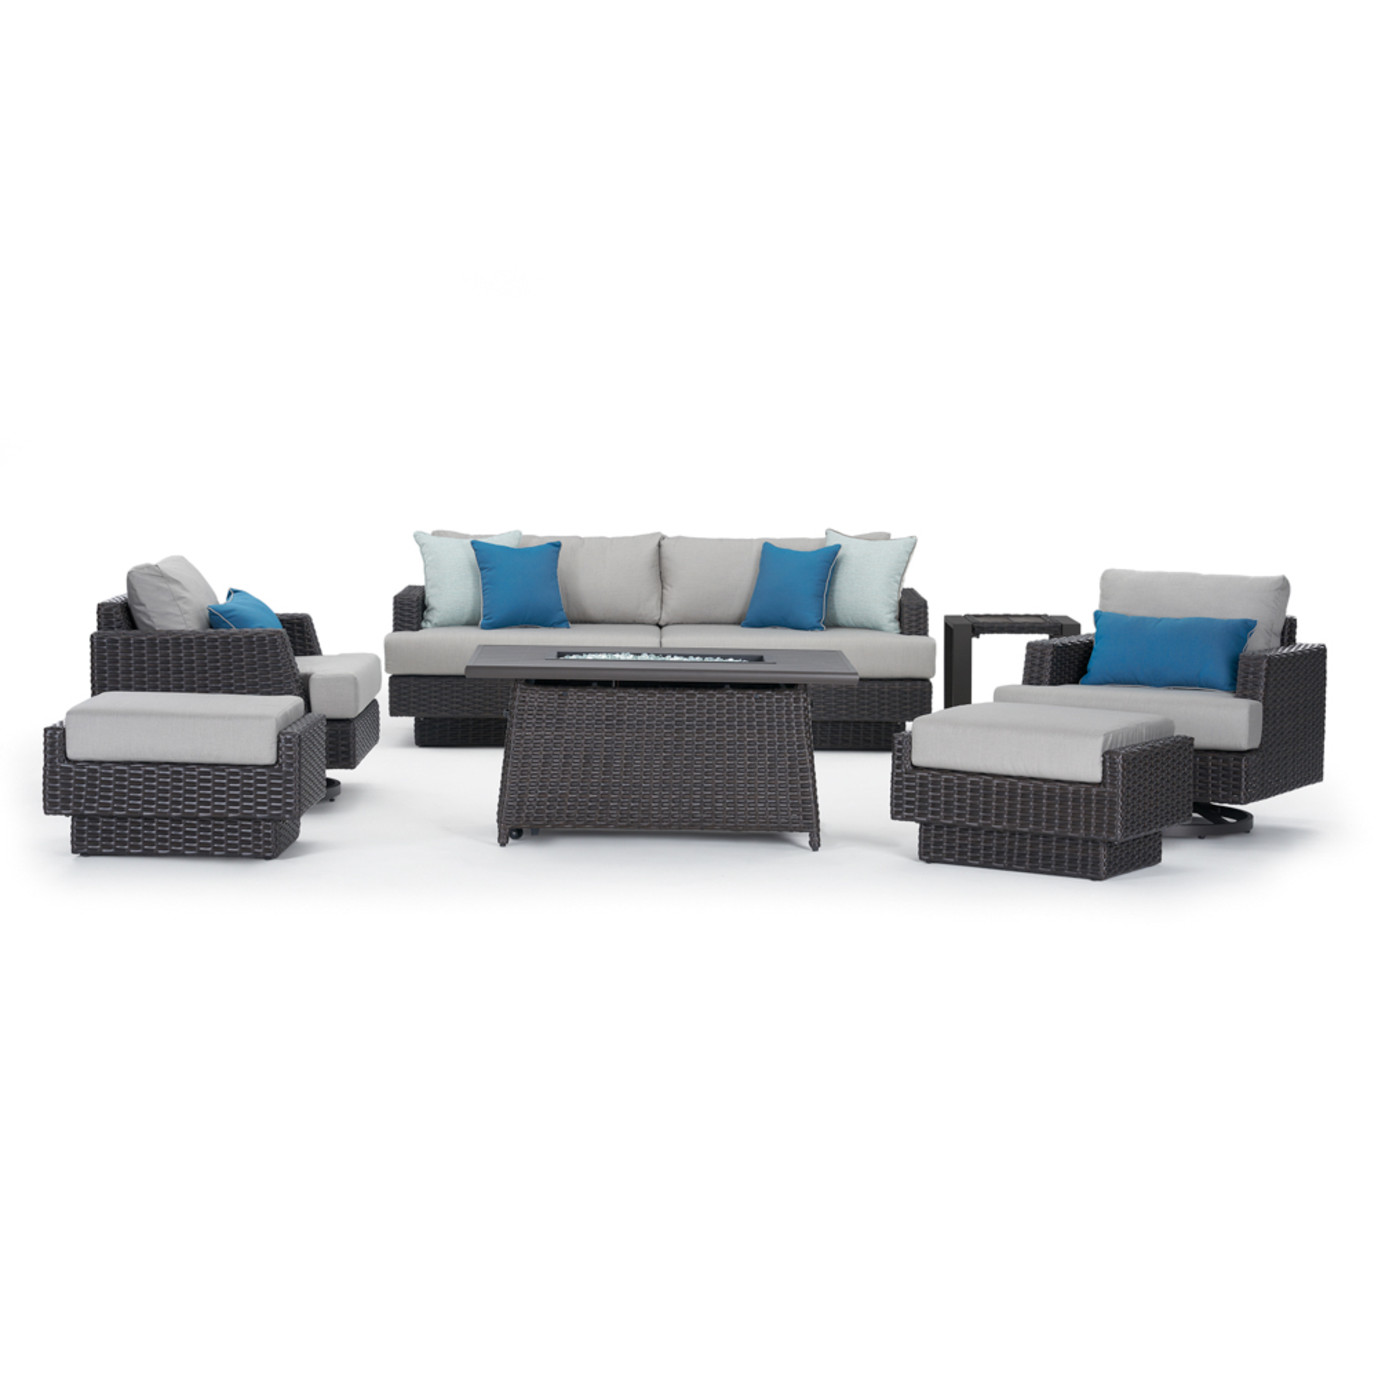 Portofino Repose 7pc Motion Fire Seating Set - Dove Gray